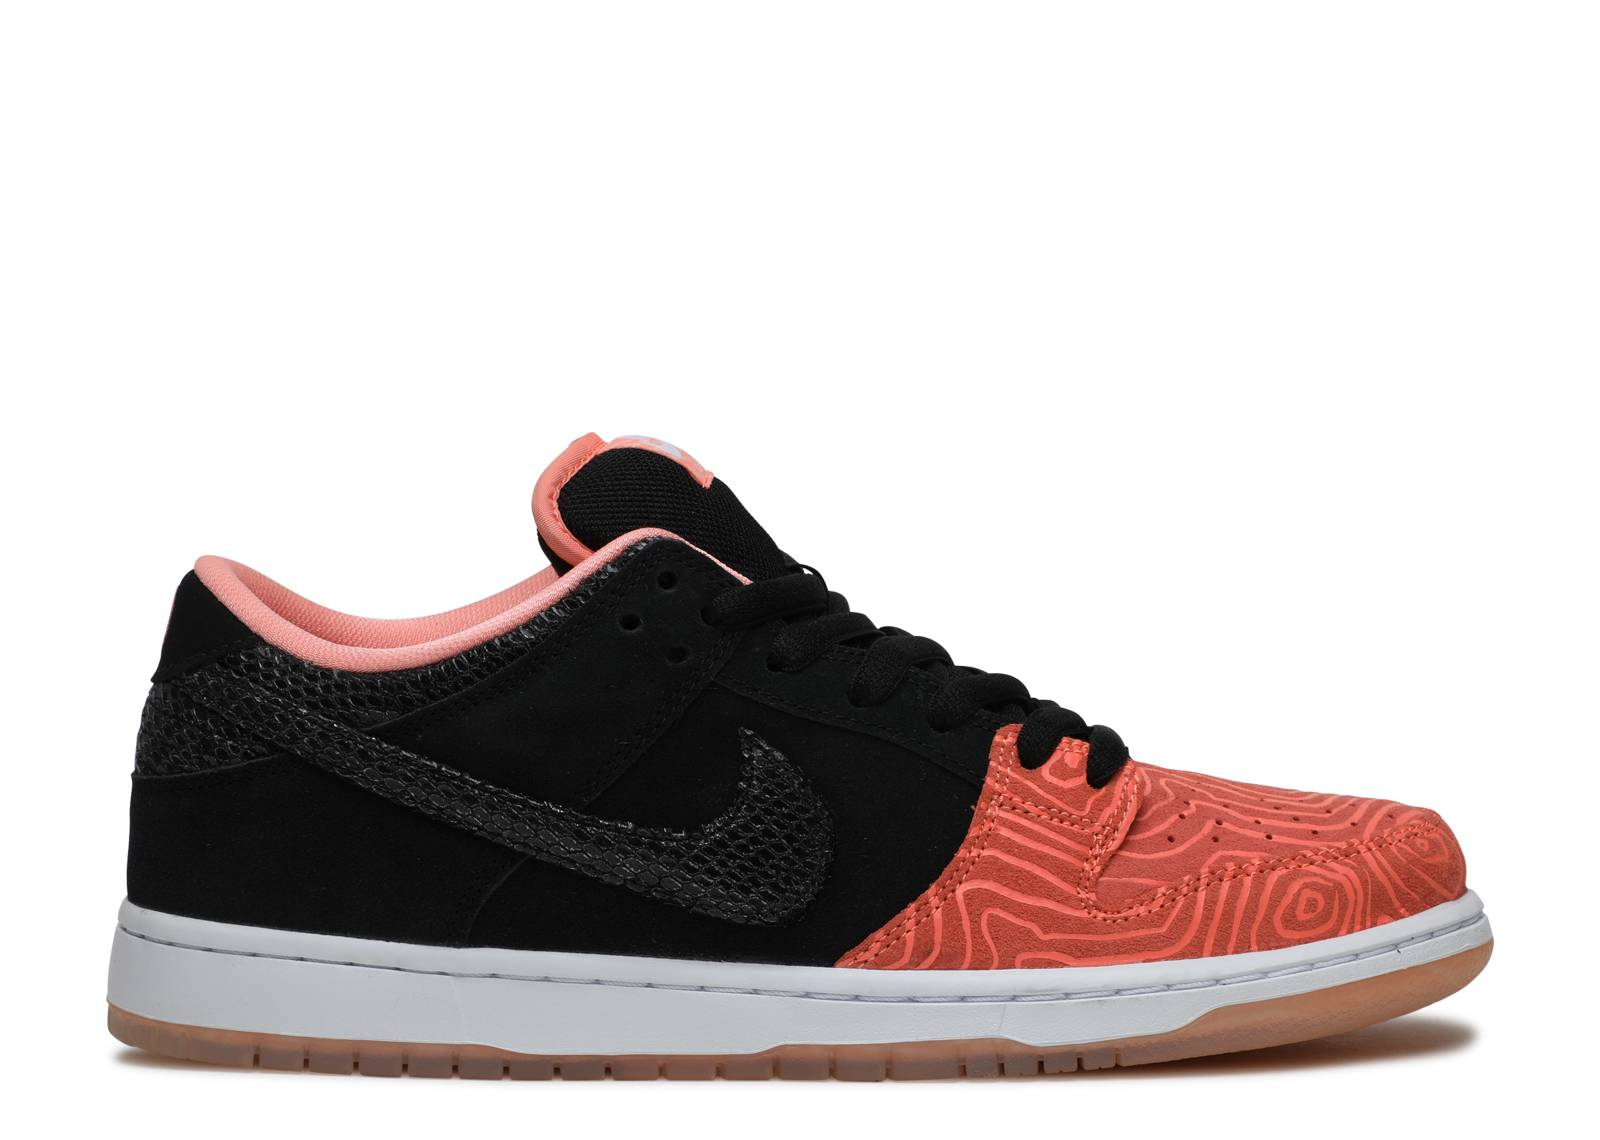 the best attitude 4647e 2e783 Premier x Dunk Low Pro SB 'Fish Ladder'